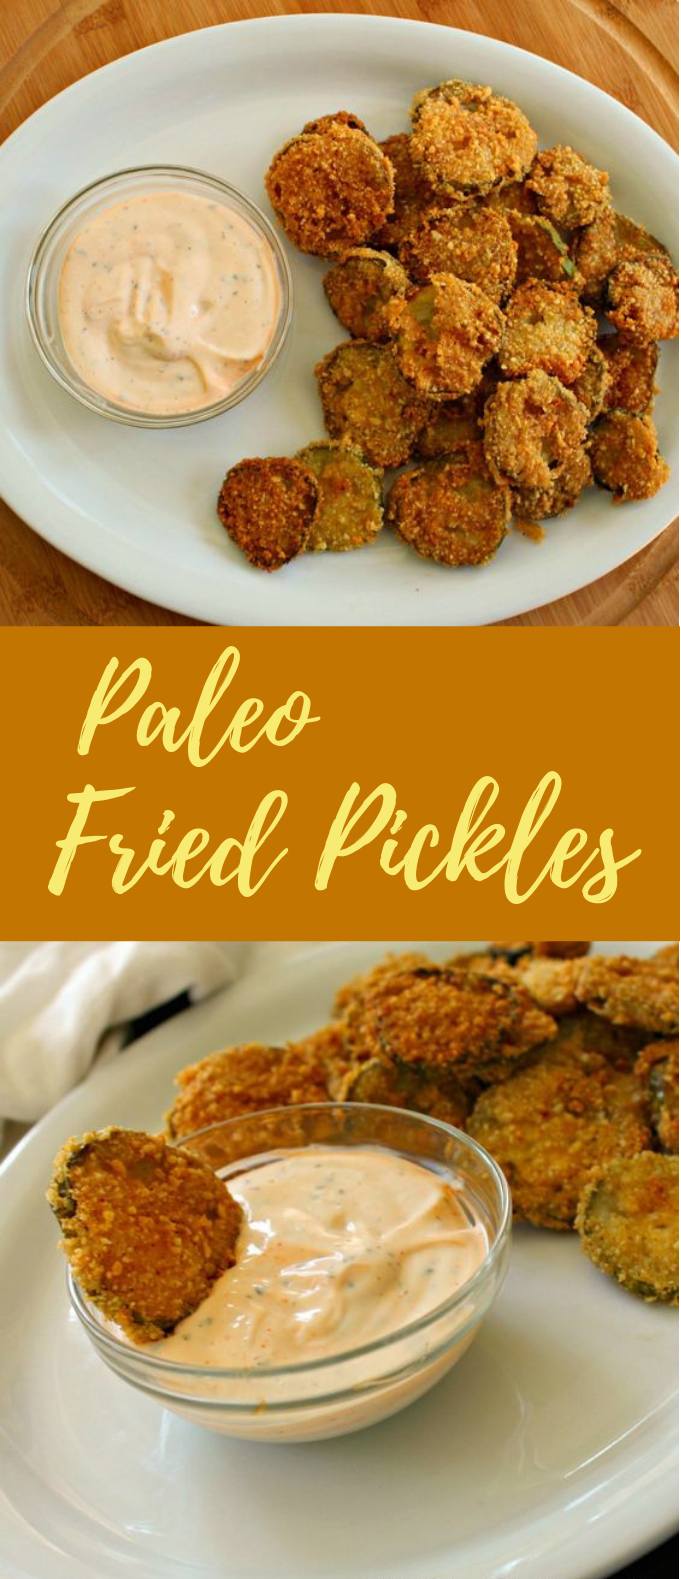 PALEO FRIED PICKLES #PaleoDiet #DietFood